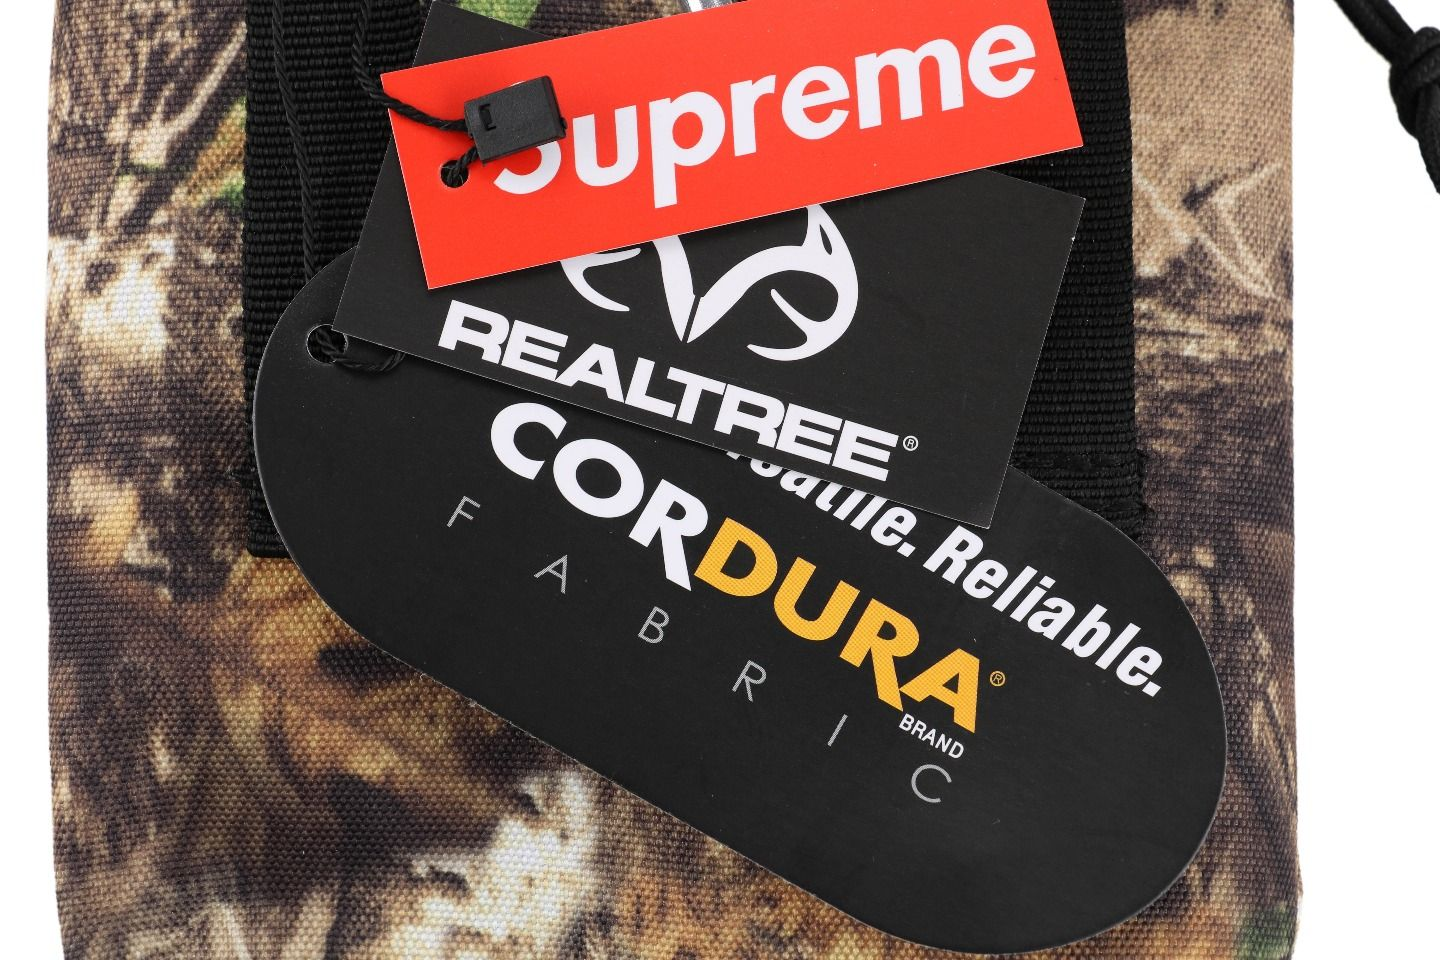 Goods Supreme Shoulder Bag (FW19) Real Tree Camo 3 supreme_shoulder_bag_fw19_real_tree_camo__3